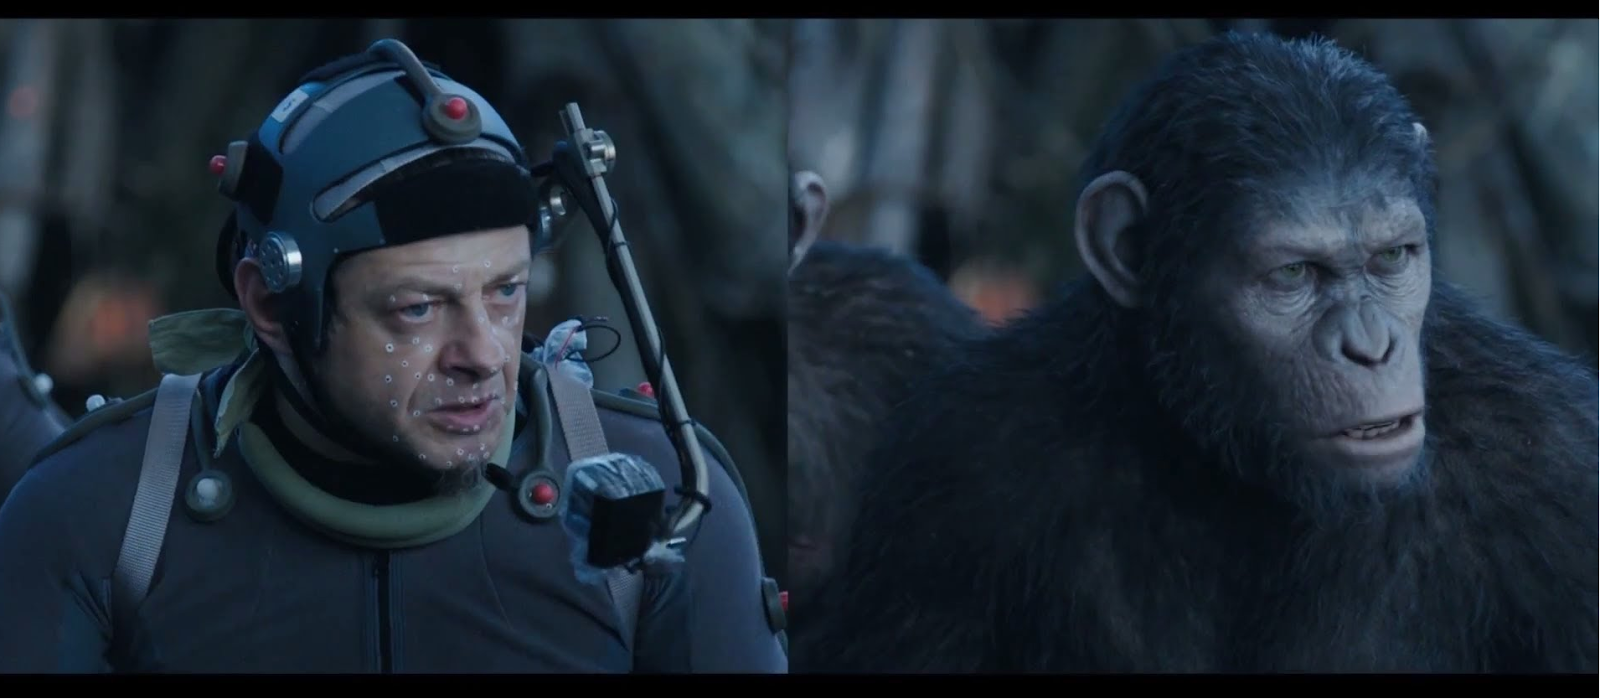 dawn of the planet of the apes visual effects